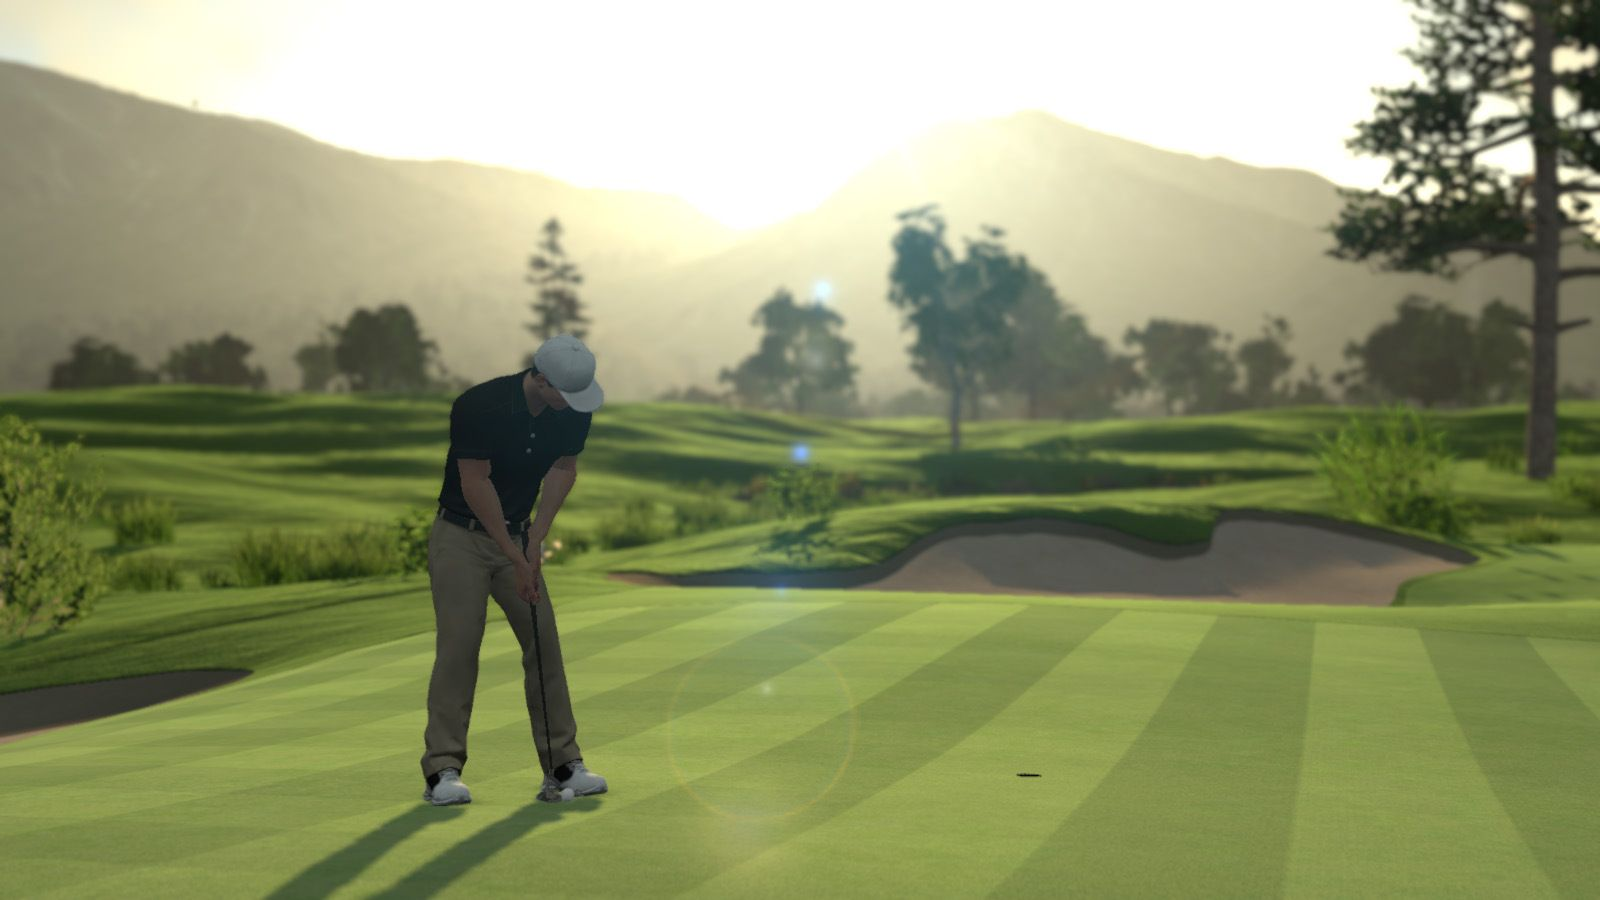 Holeinone registration enables us to record and